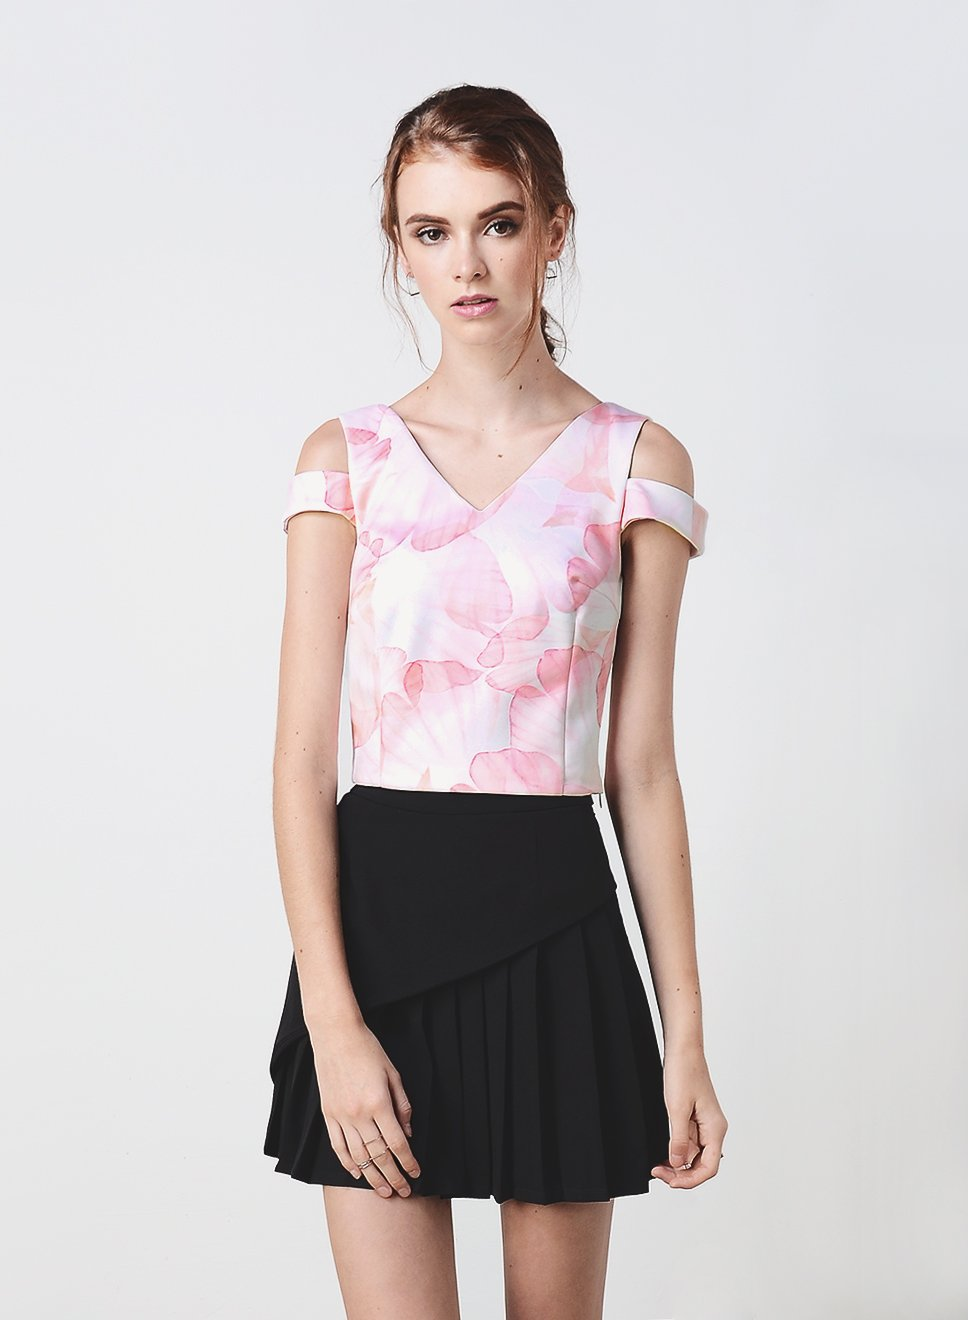 ROUX Double Strap Top (Blush Floral) at $ 15.00 only sold at And Well Dressed Online Fashion Store Singapore